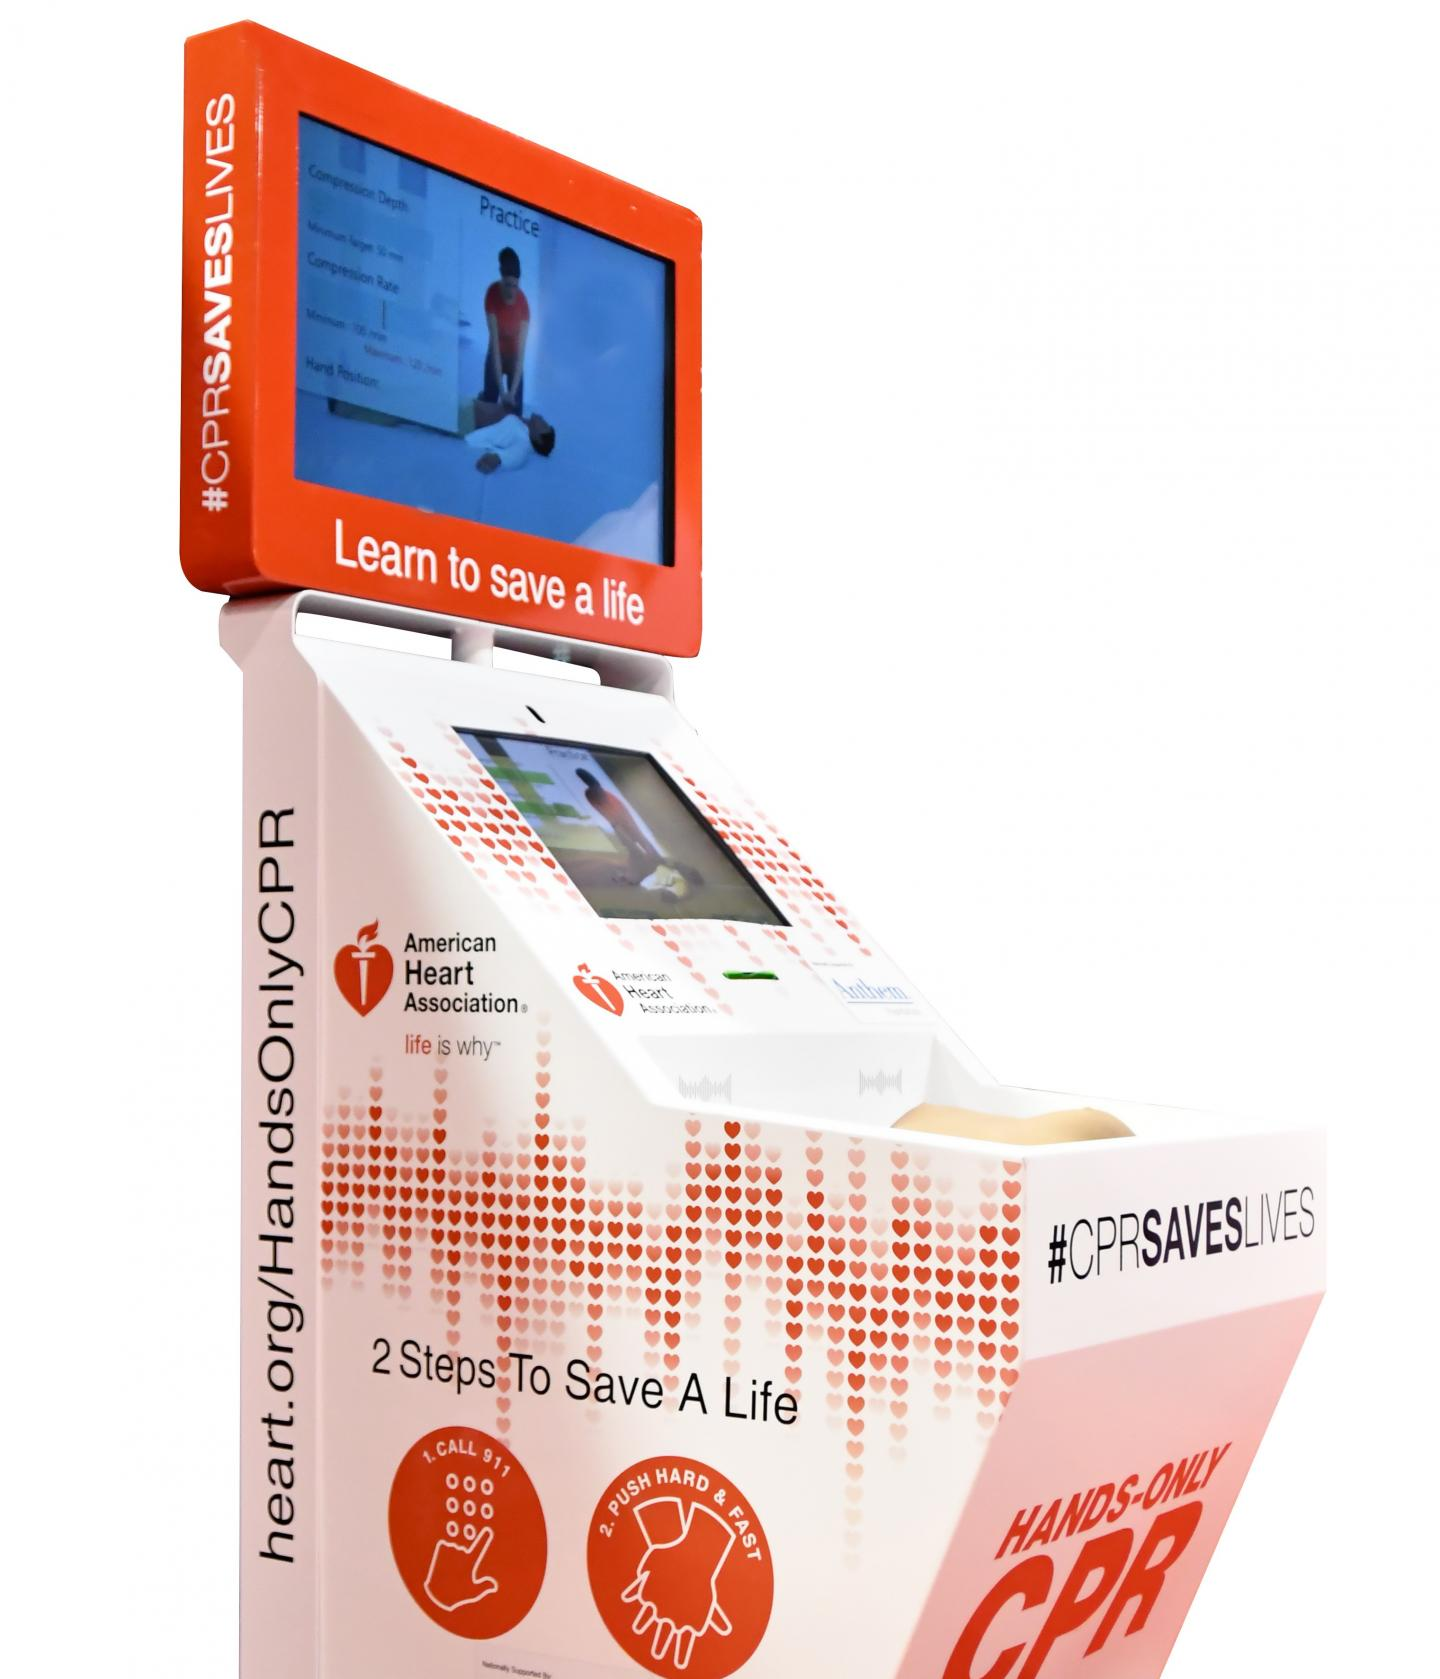 Hands-Only CPR Training Kiosk